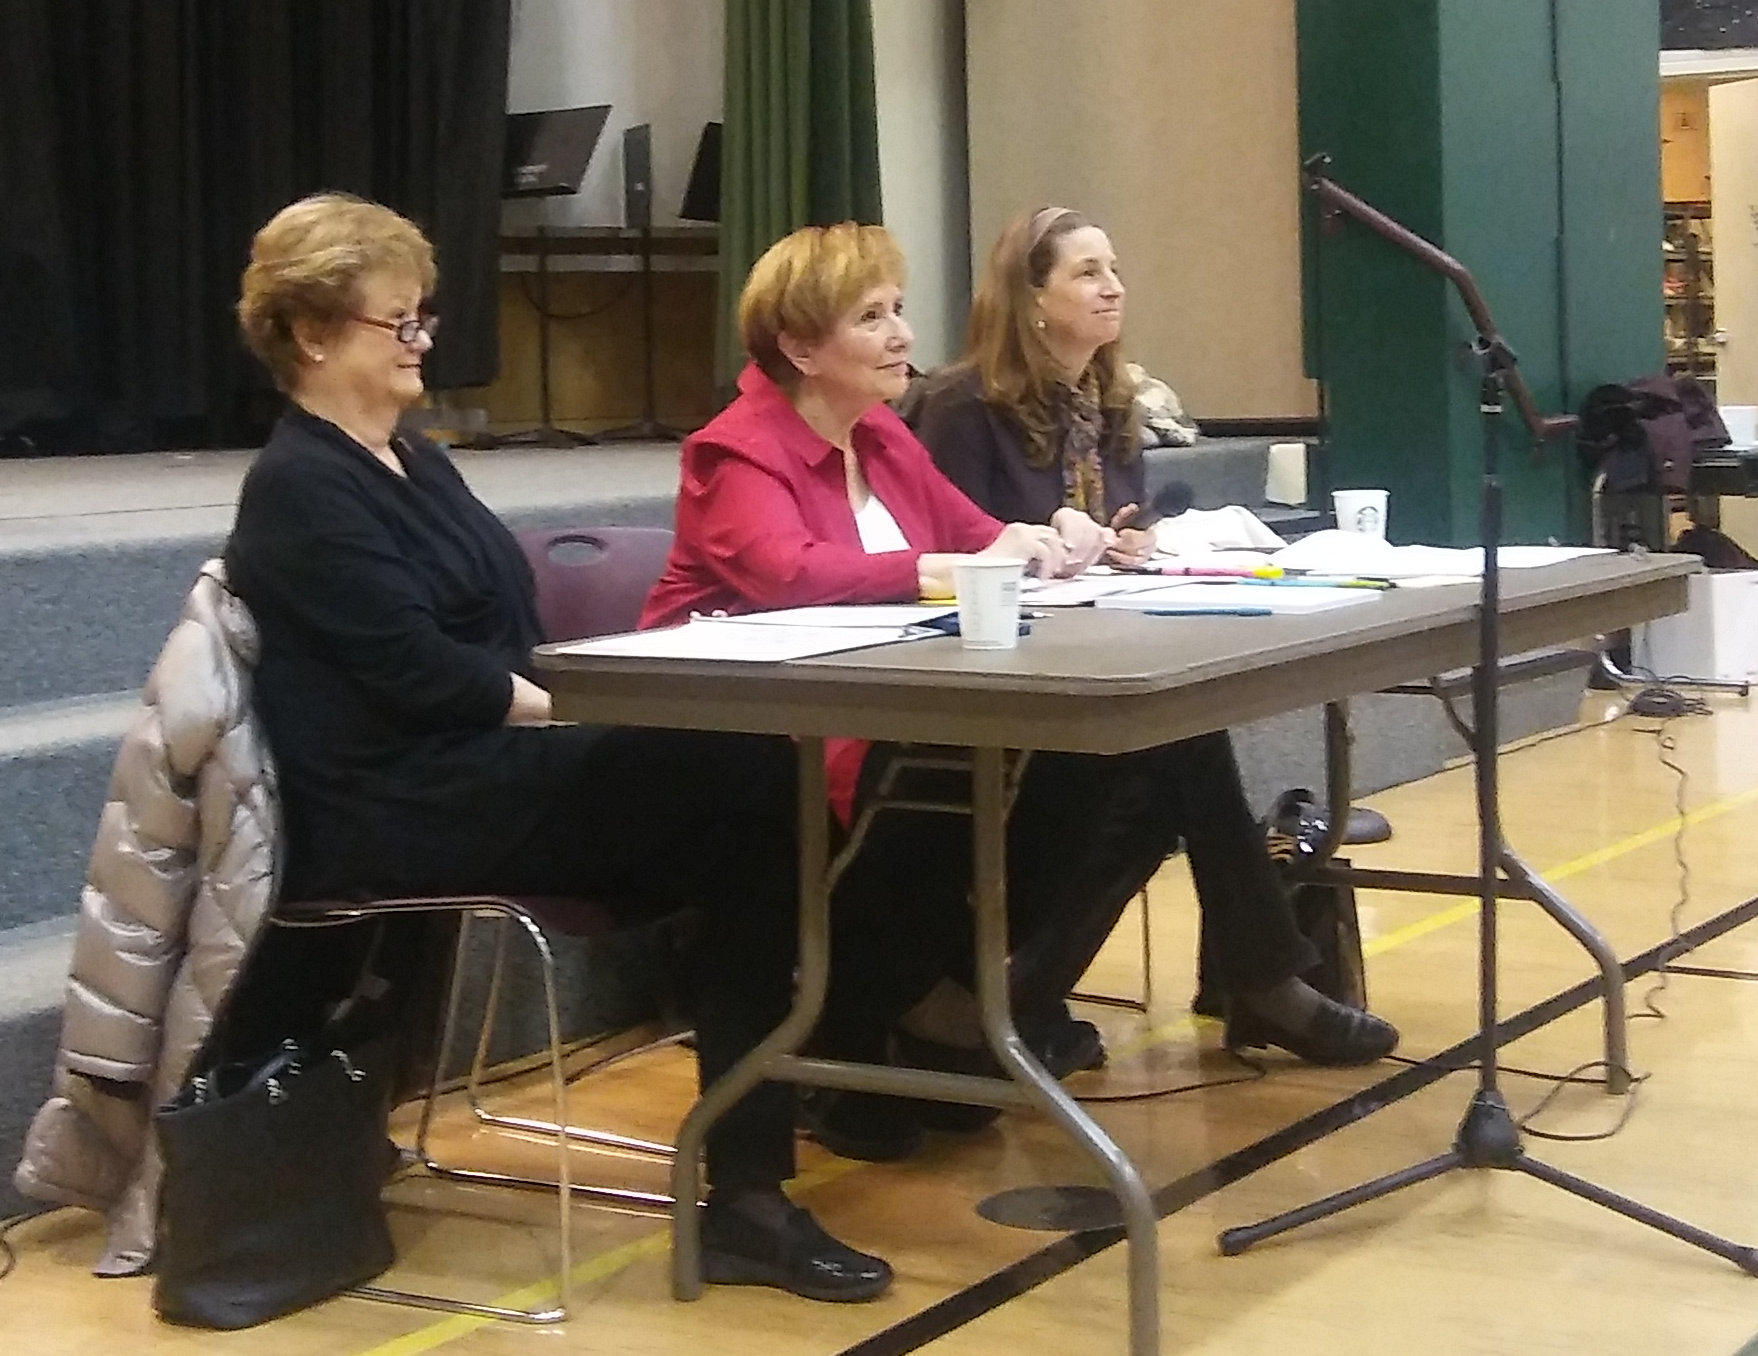 Rep. Judy Clibborn, Sen. Lisa Wellman, Rep. Tana Senn at 41st LD Town Hall, Feb 17, 2018